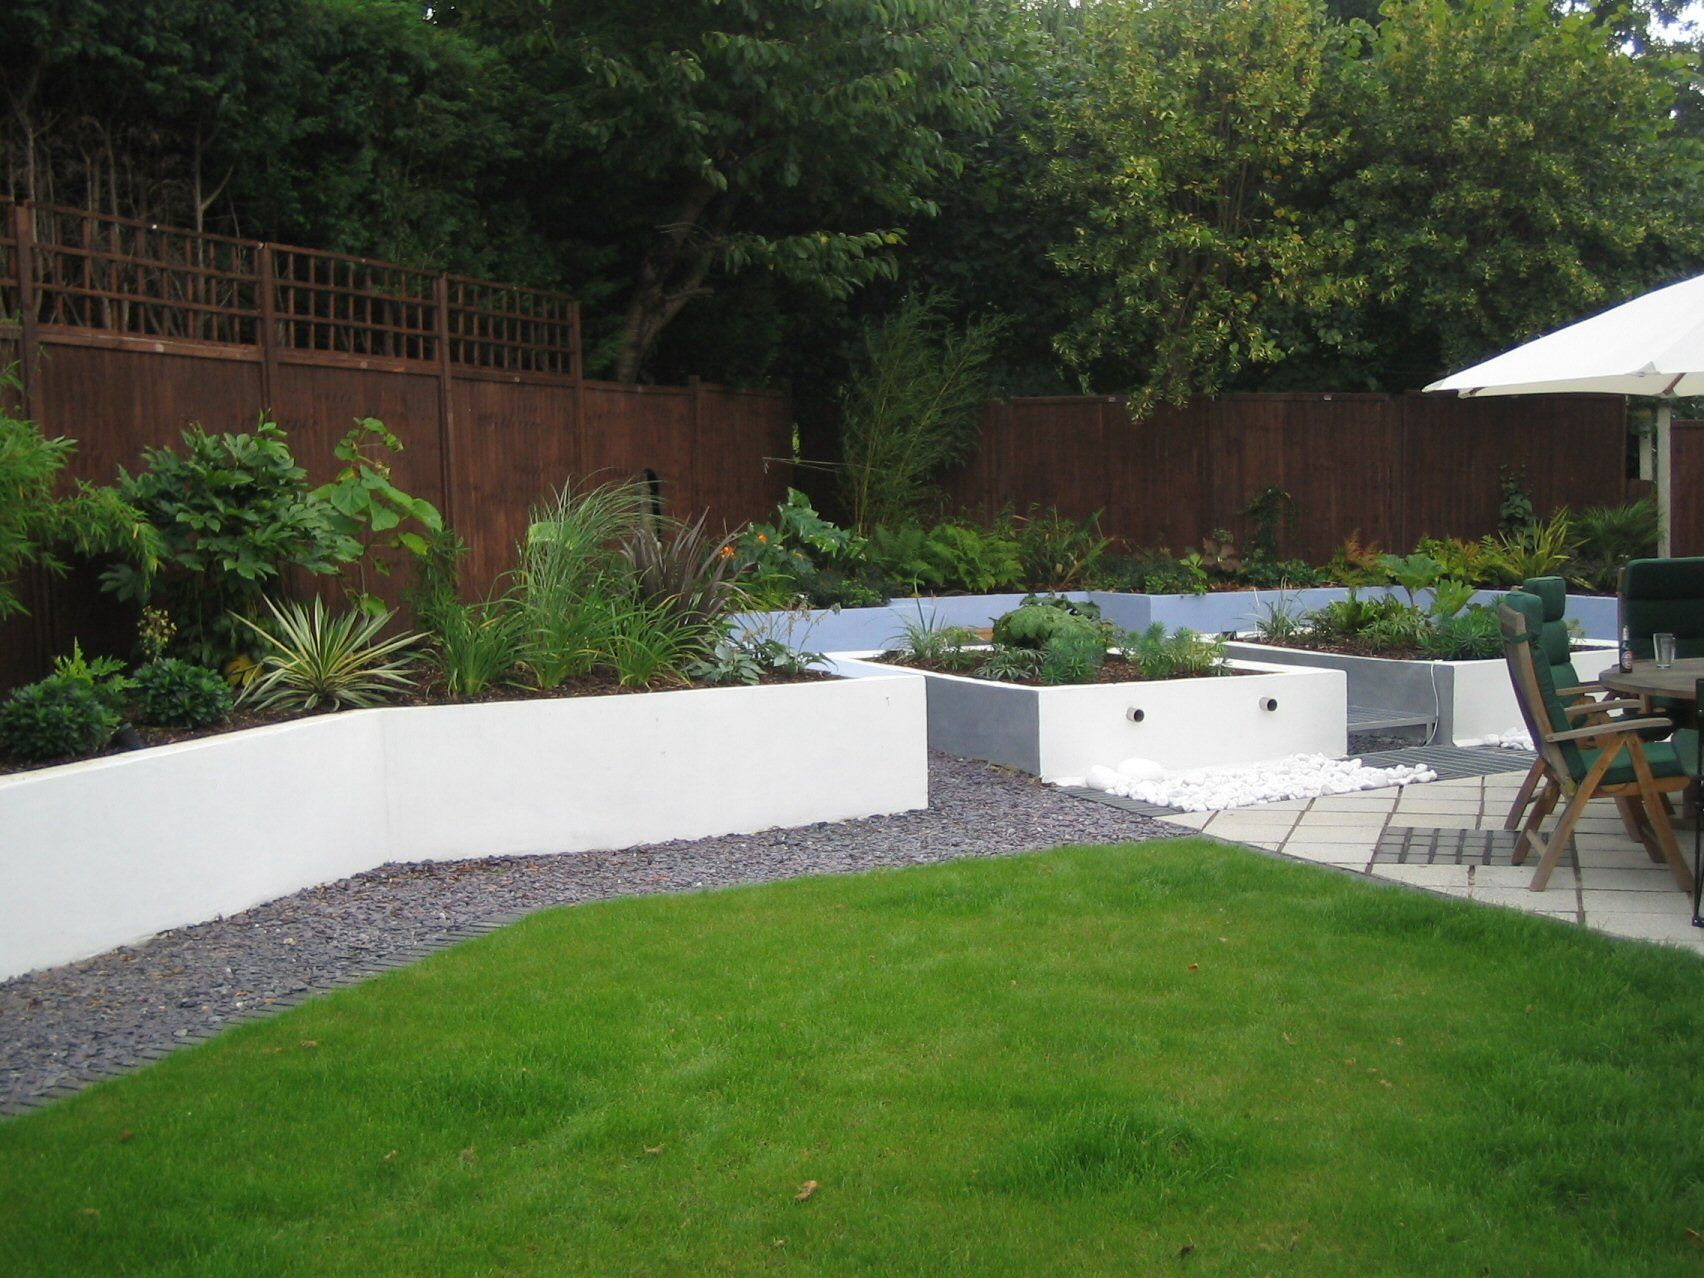 Raised Beds Garden Pinterest Gardens Raised Beds And Click!